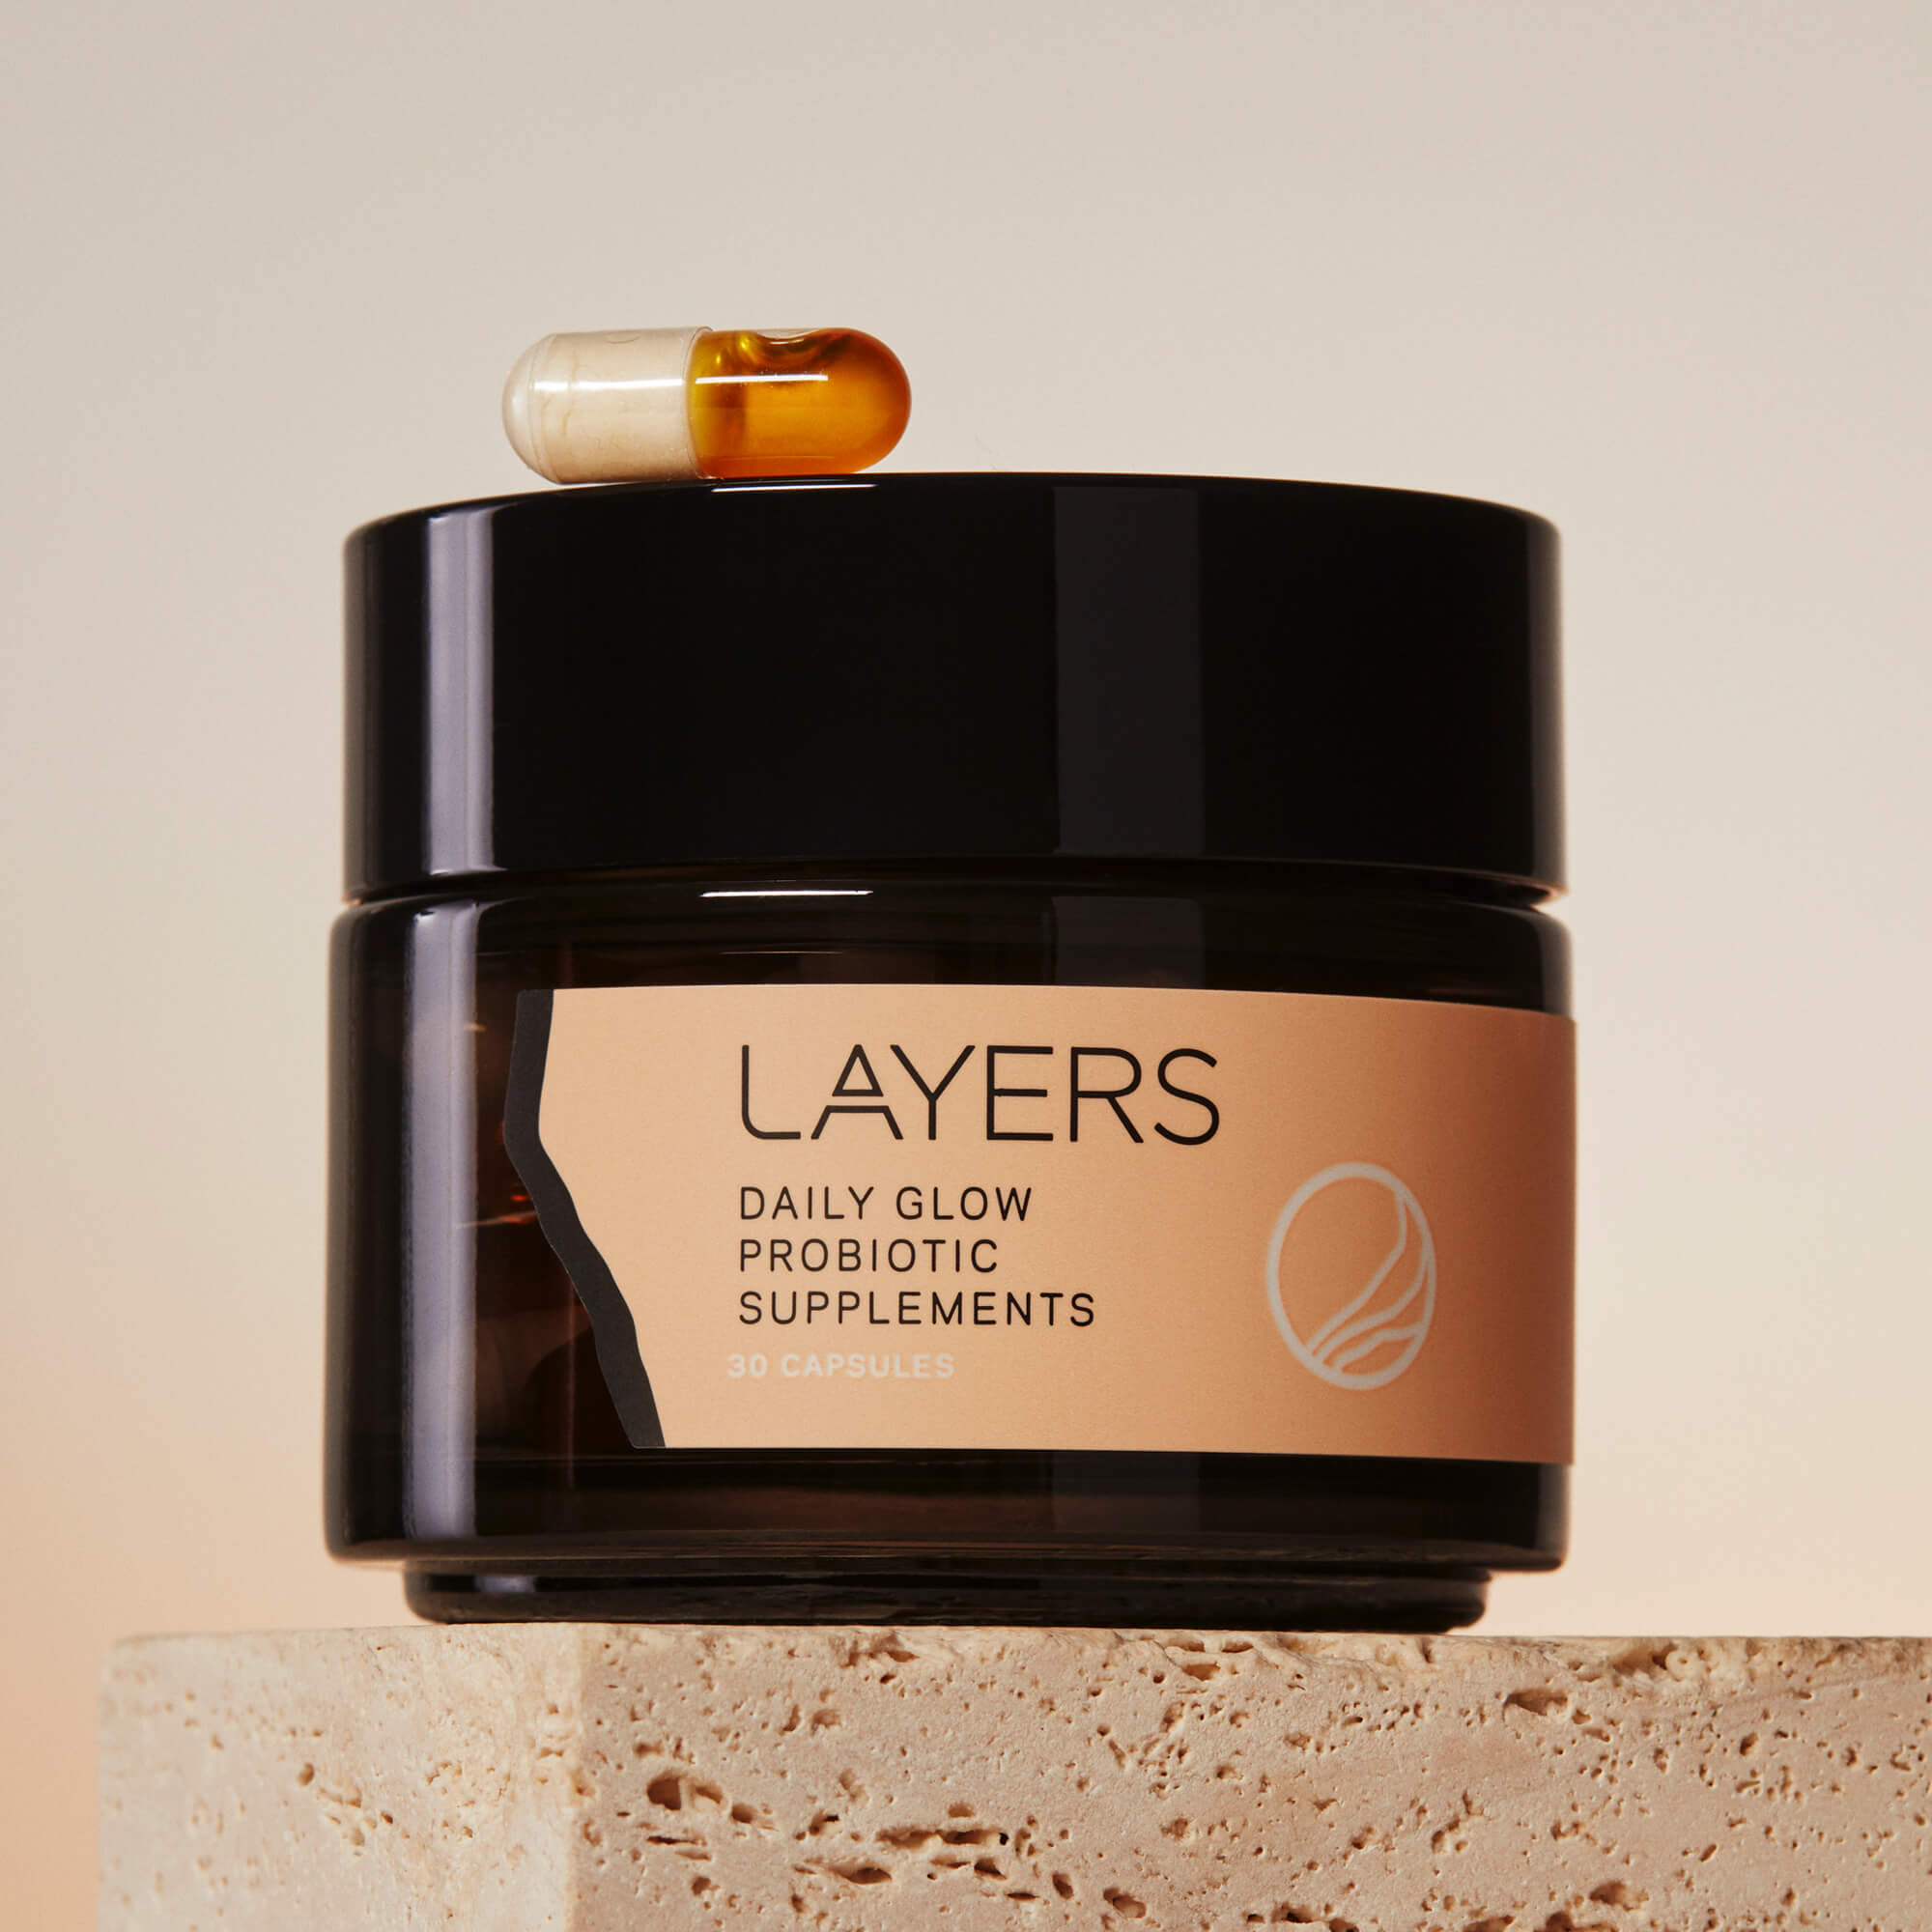 Layers Probiotic Skincare Daily Glow Probiotic Supplements. Semi-Transparent black glass jar with 30 dual-sided capsules. For dry, oily, and combination skin.